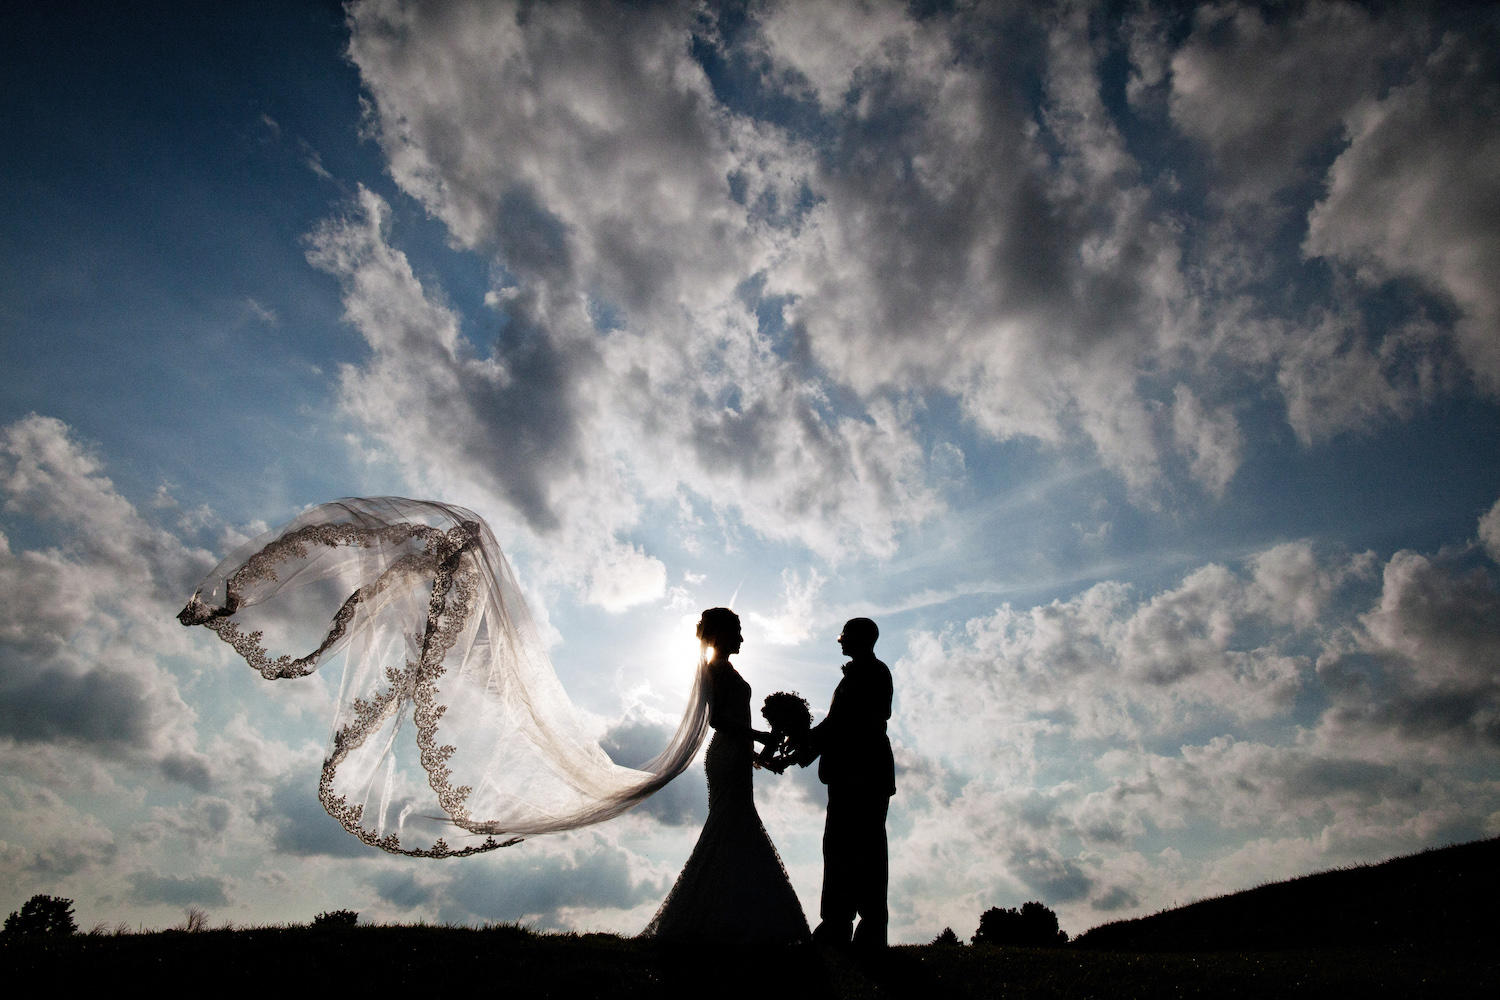 be yourself : A gorgeous wedding photo by Jorge Santiago Photography with the bride, groom and the bride's bouquet as her veil flows in the sunlight.